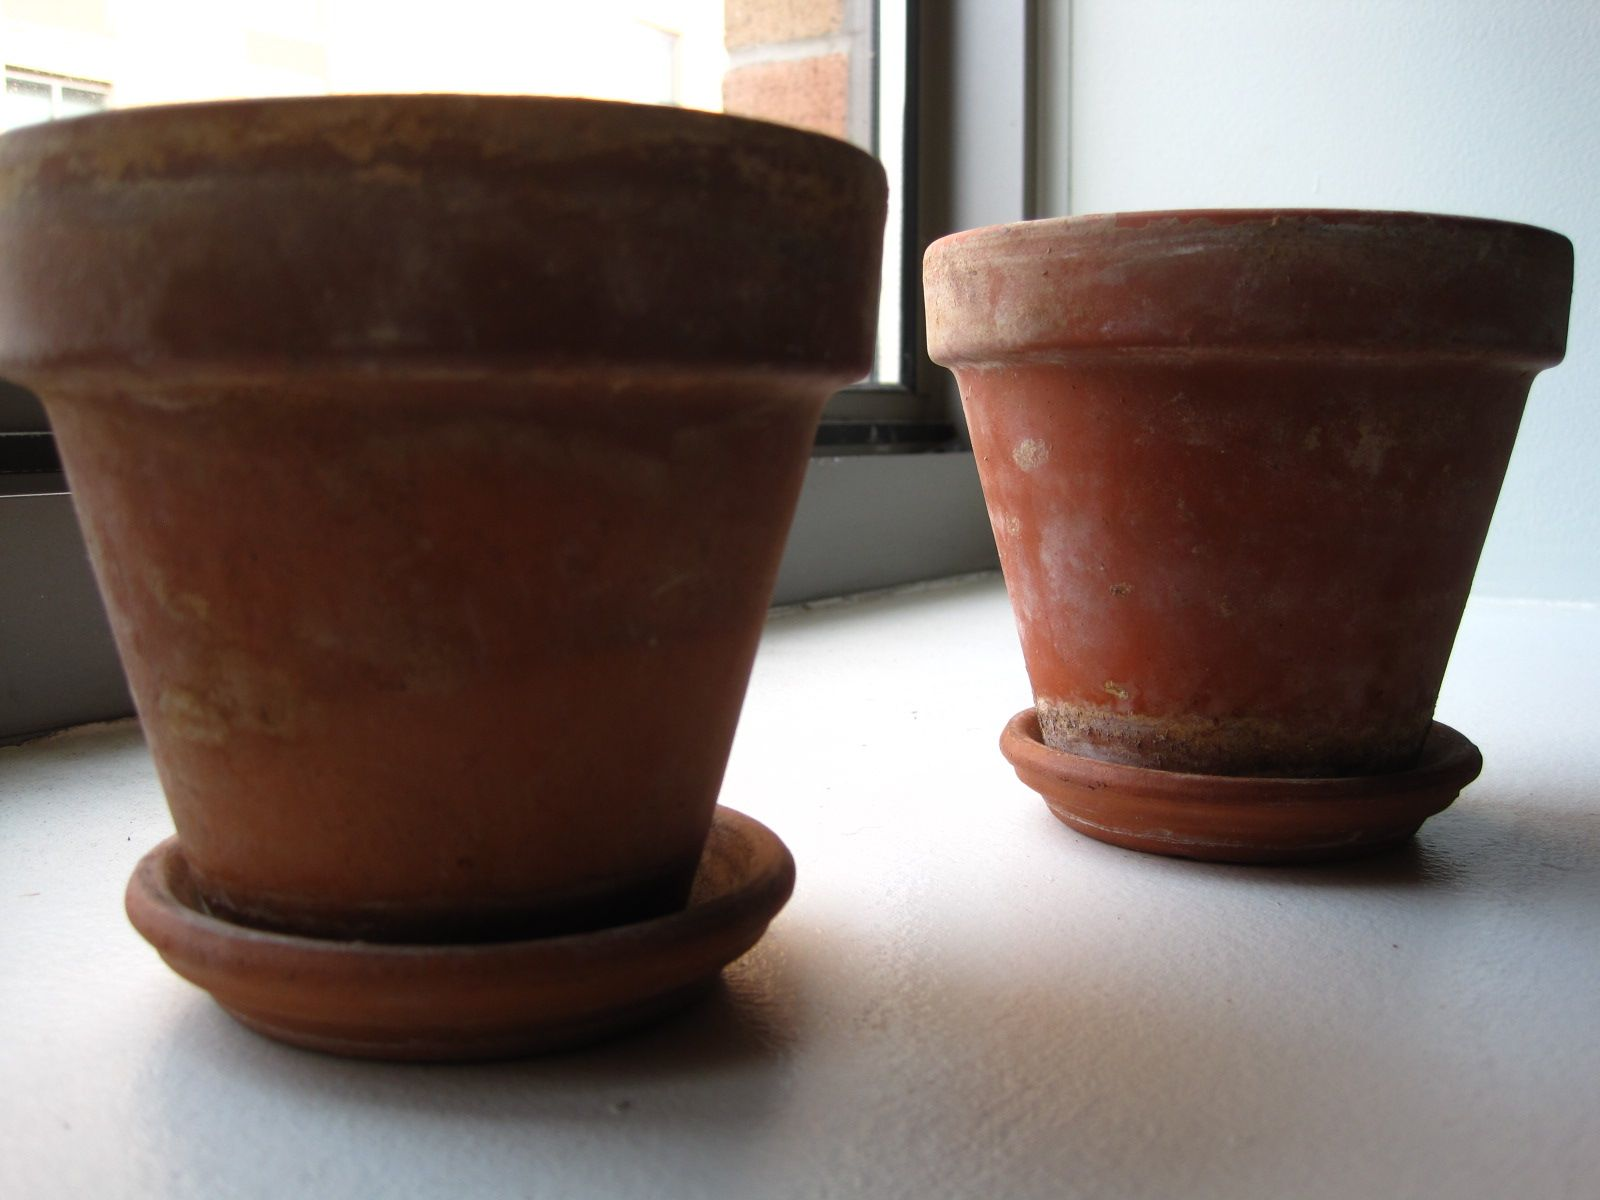 Donated By Kt A Pair Of Small Terracotta Pots Saucers With Natural Patina Small Terracotta Pots Popular Interior Design Housing Works